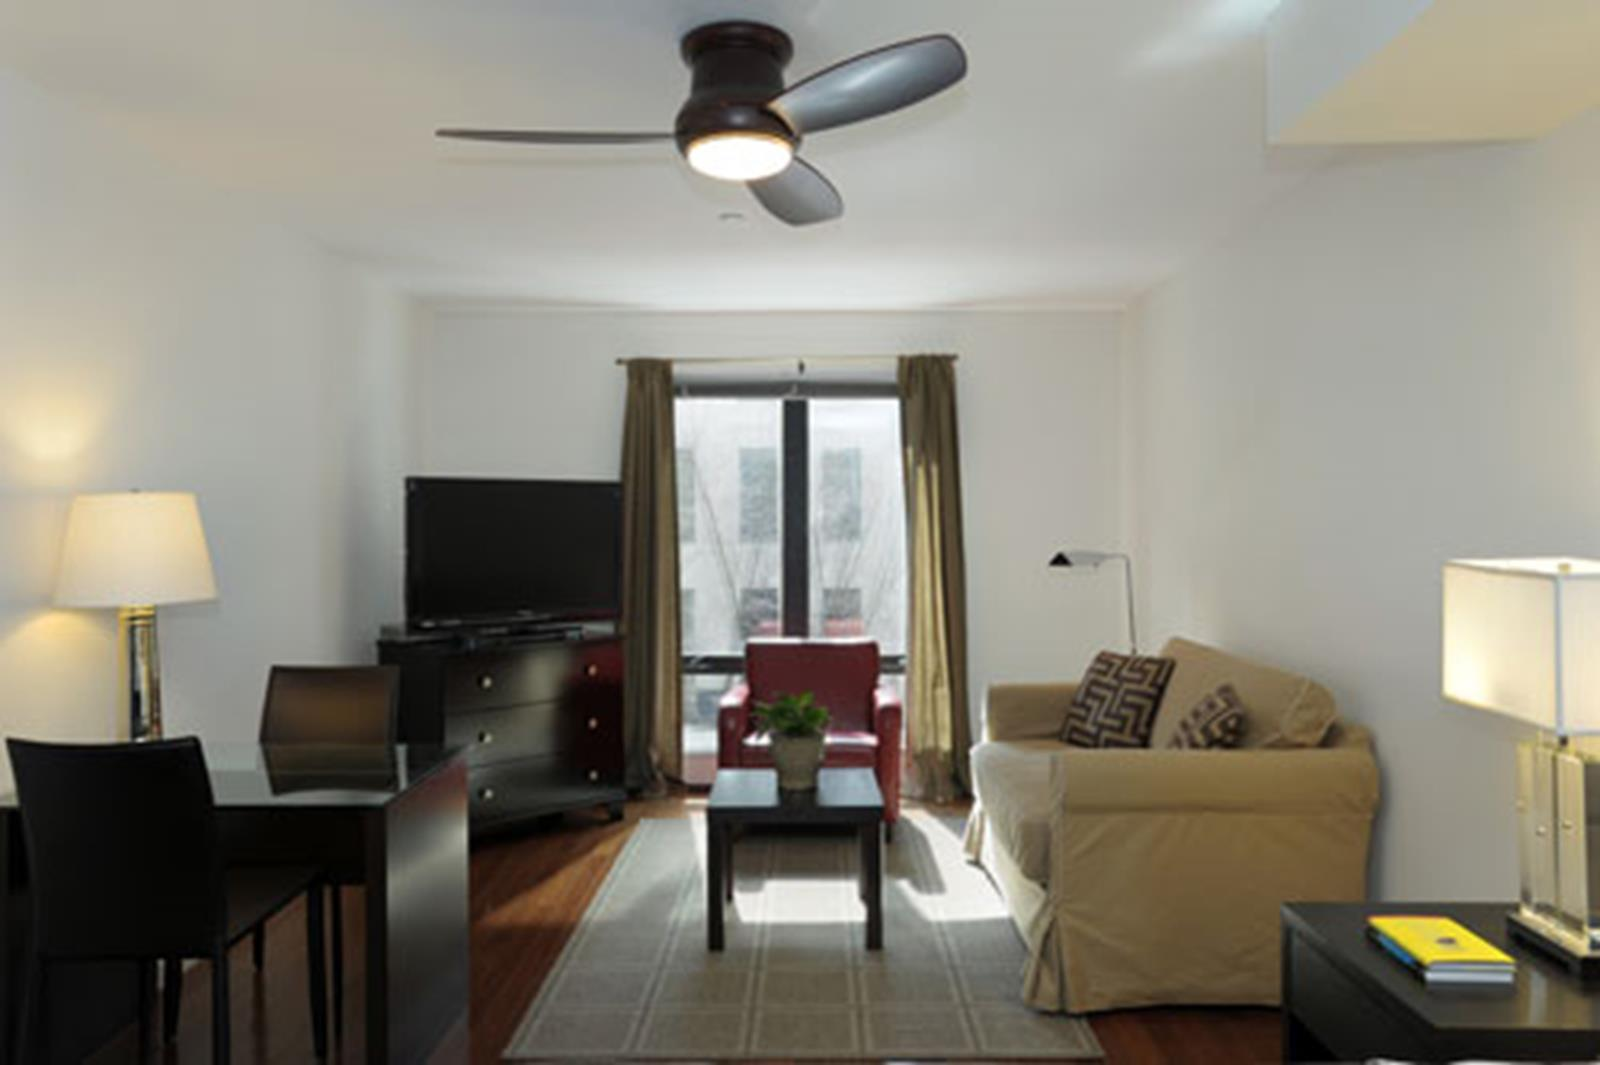 225 East 58th Street Sutton Place New York NY 10022